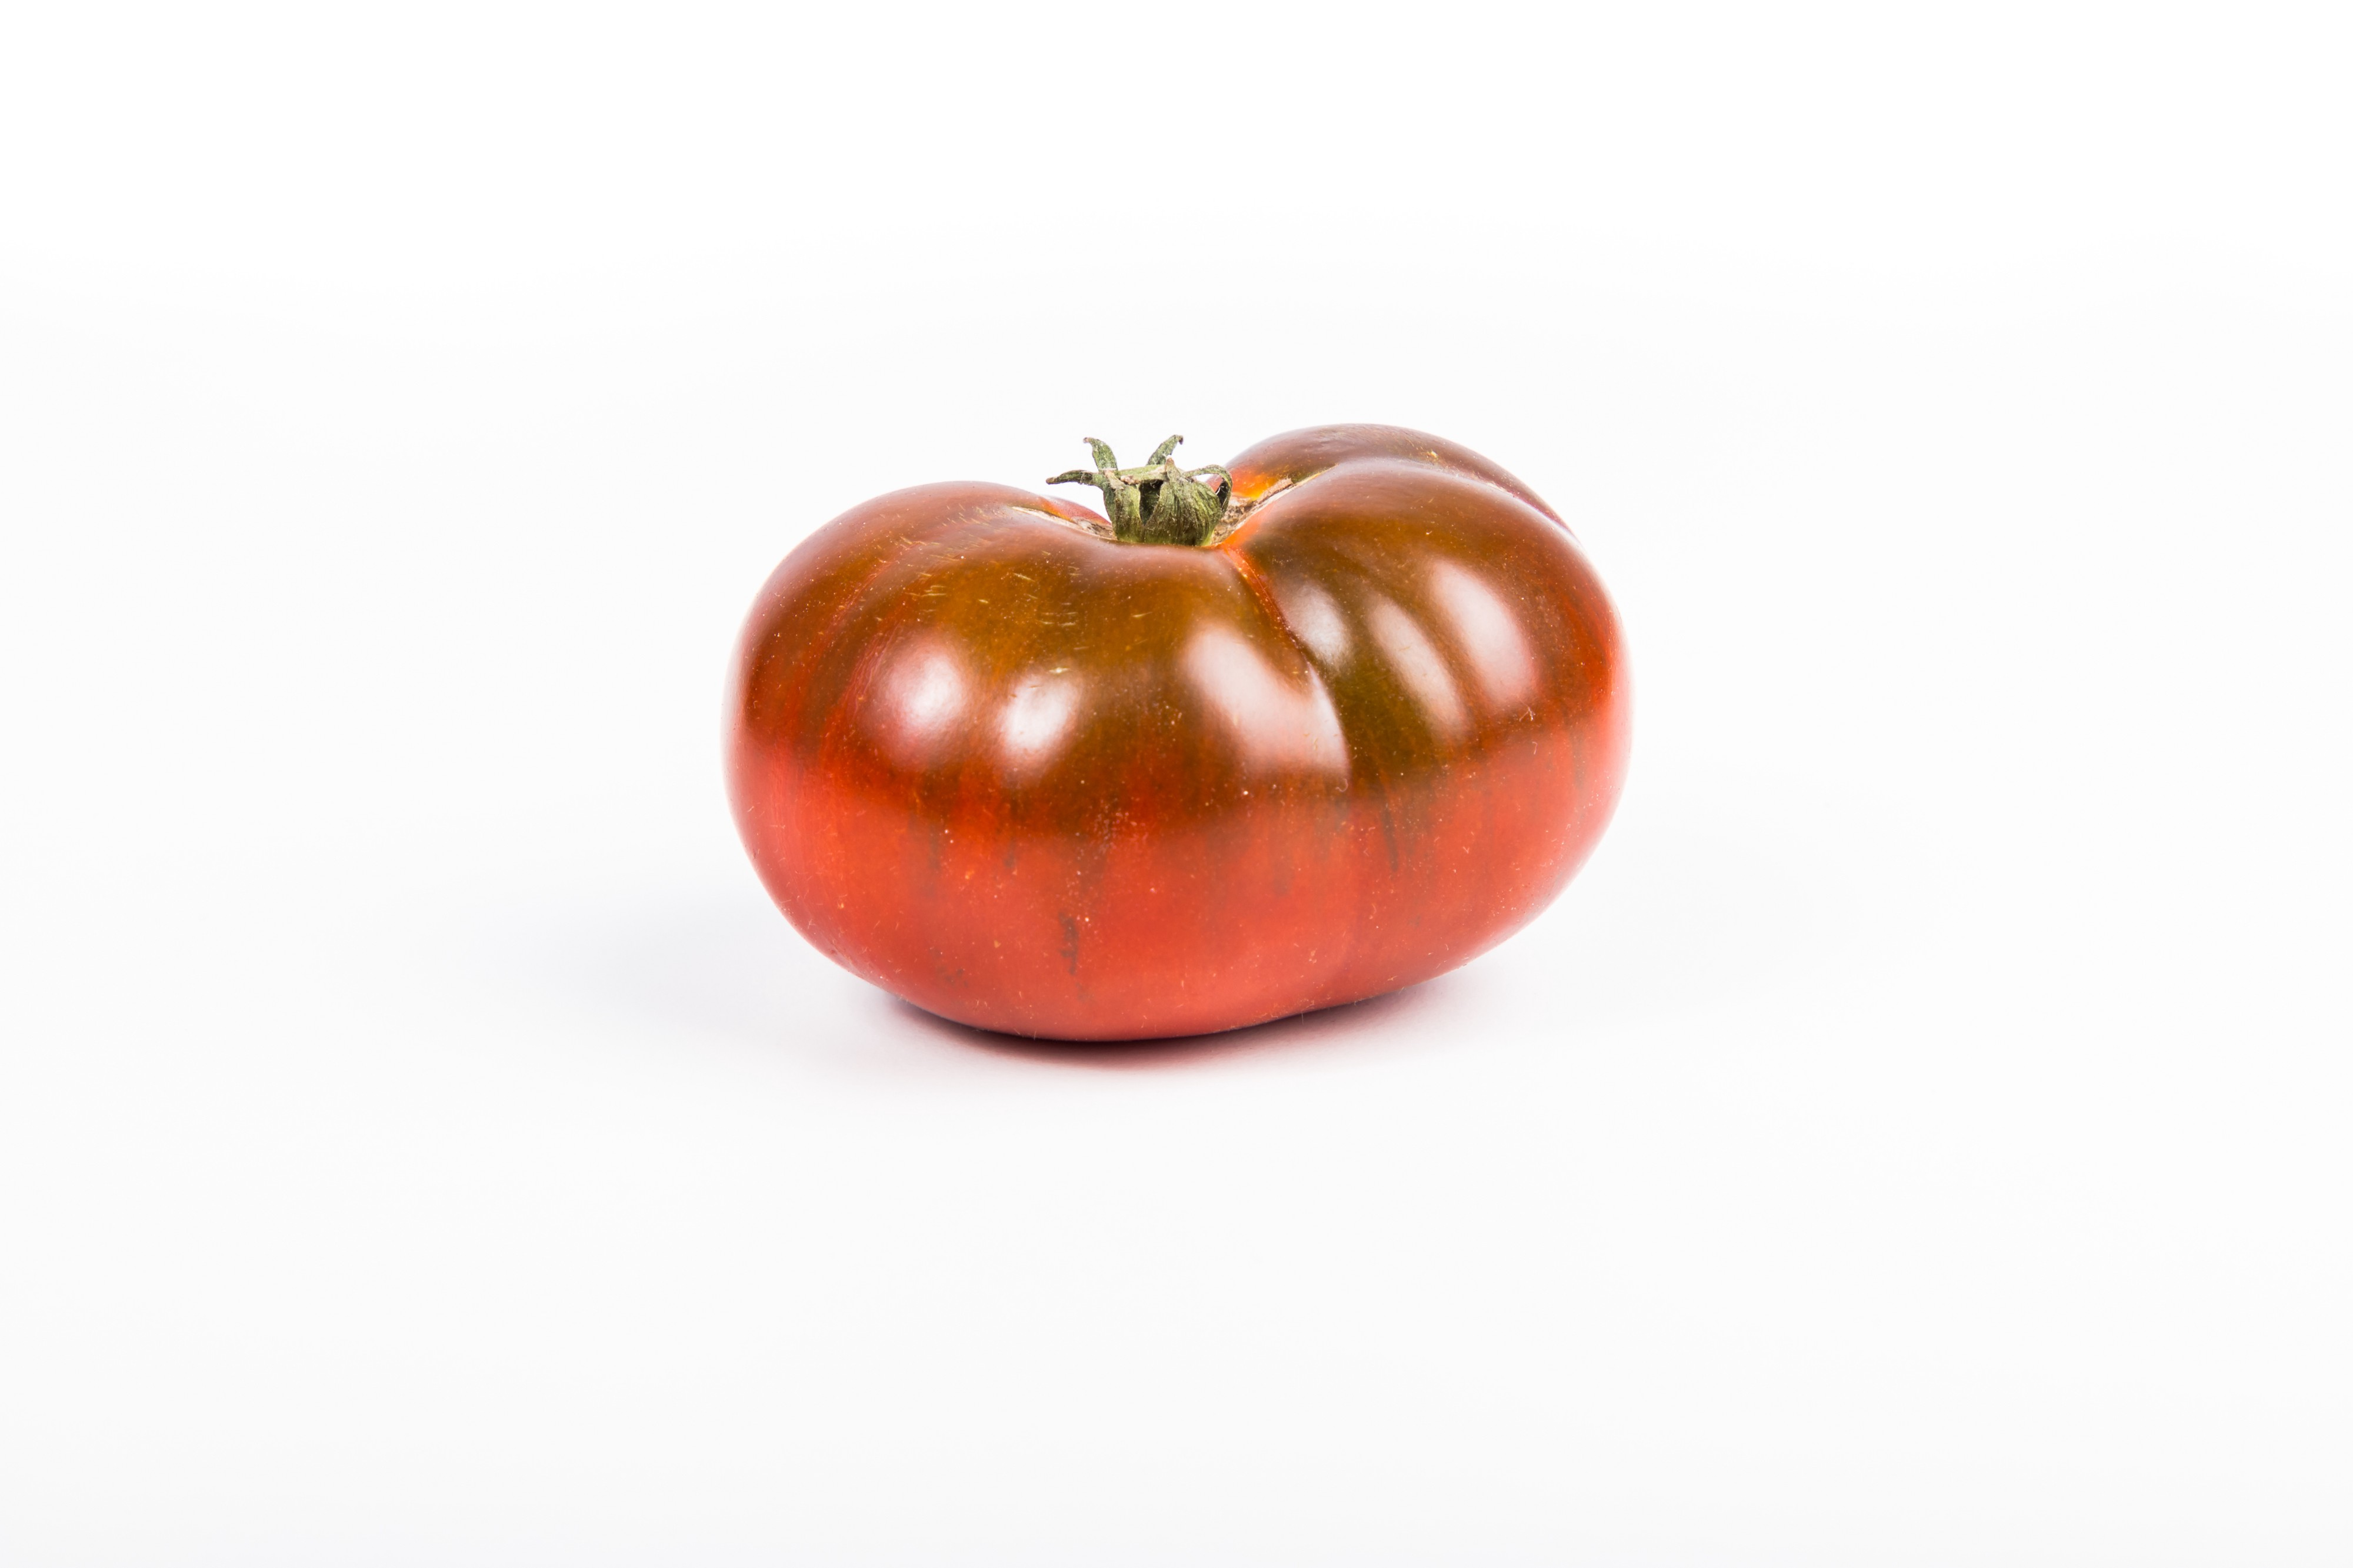 A red tomato against a white background used to illustrate the Pomodoro Technique